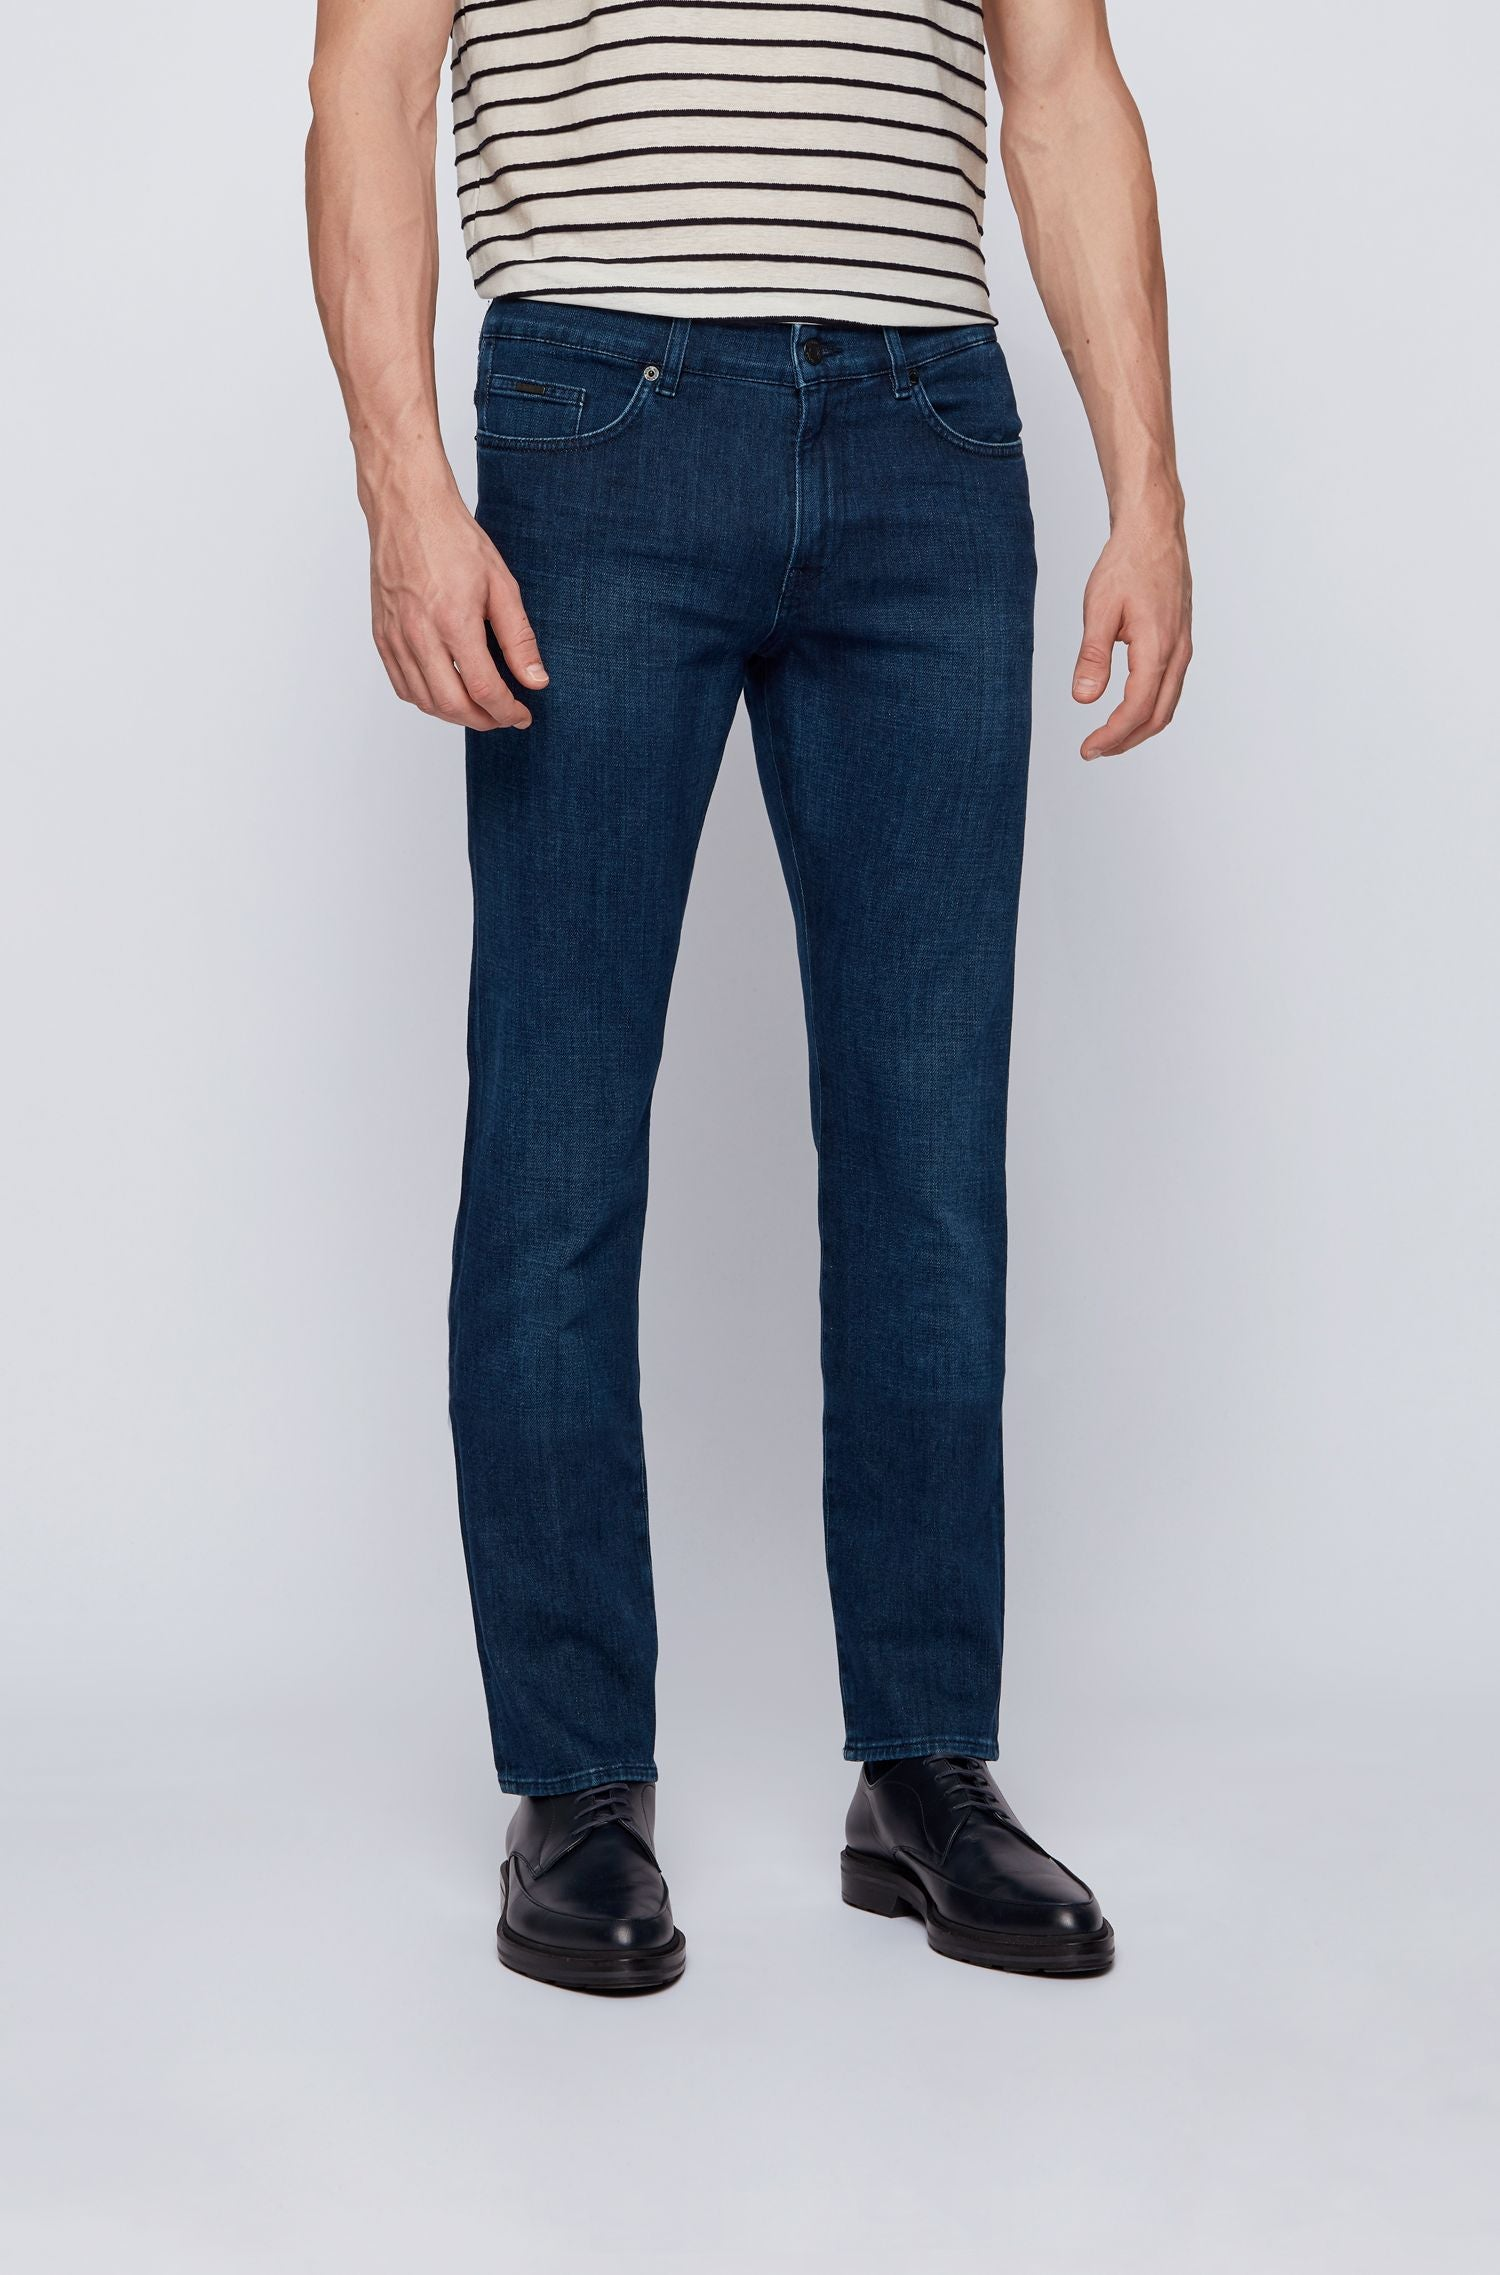 Hugo Boss Delaware Jeans - Denim